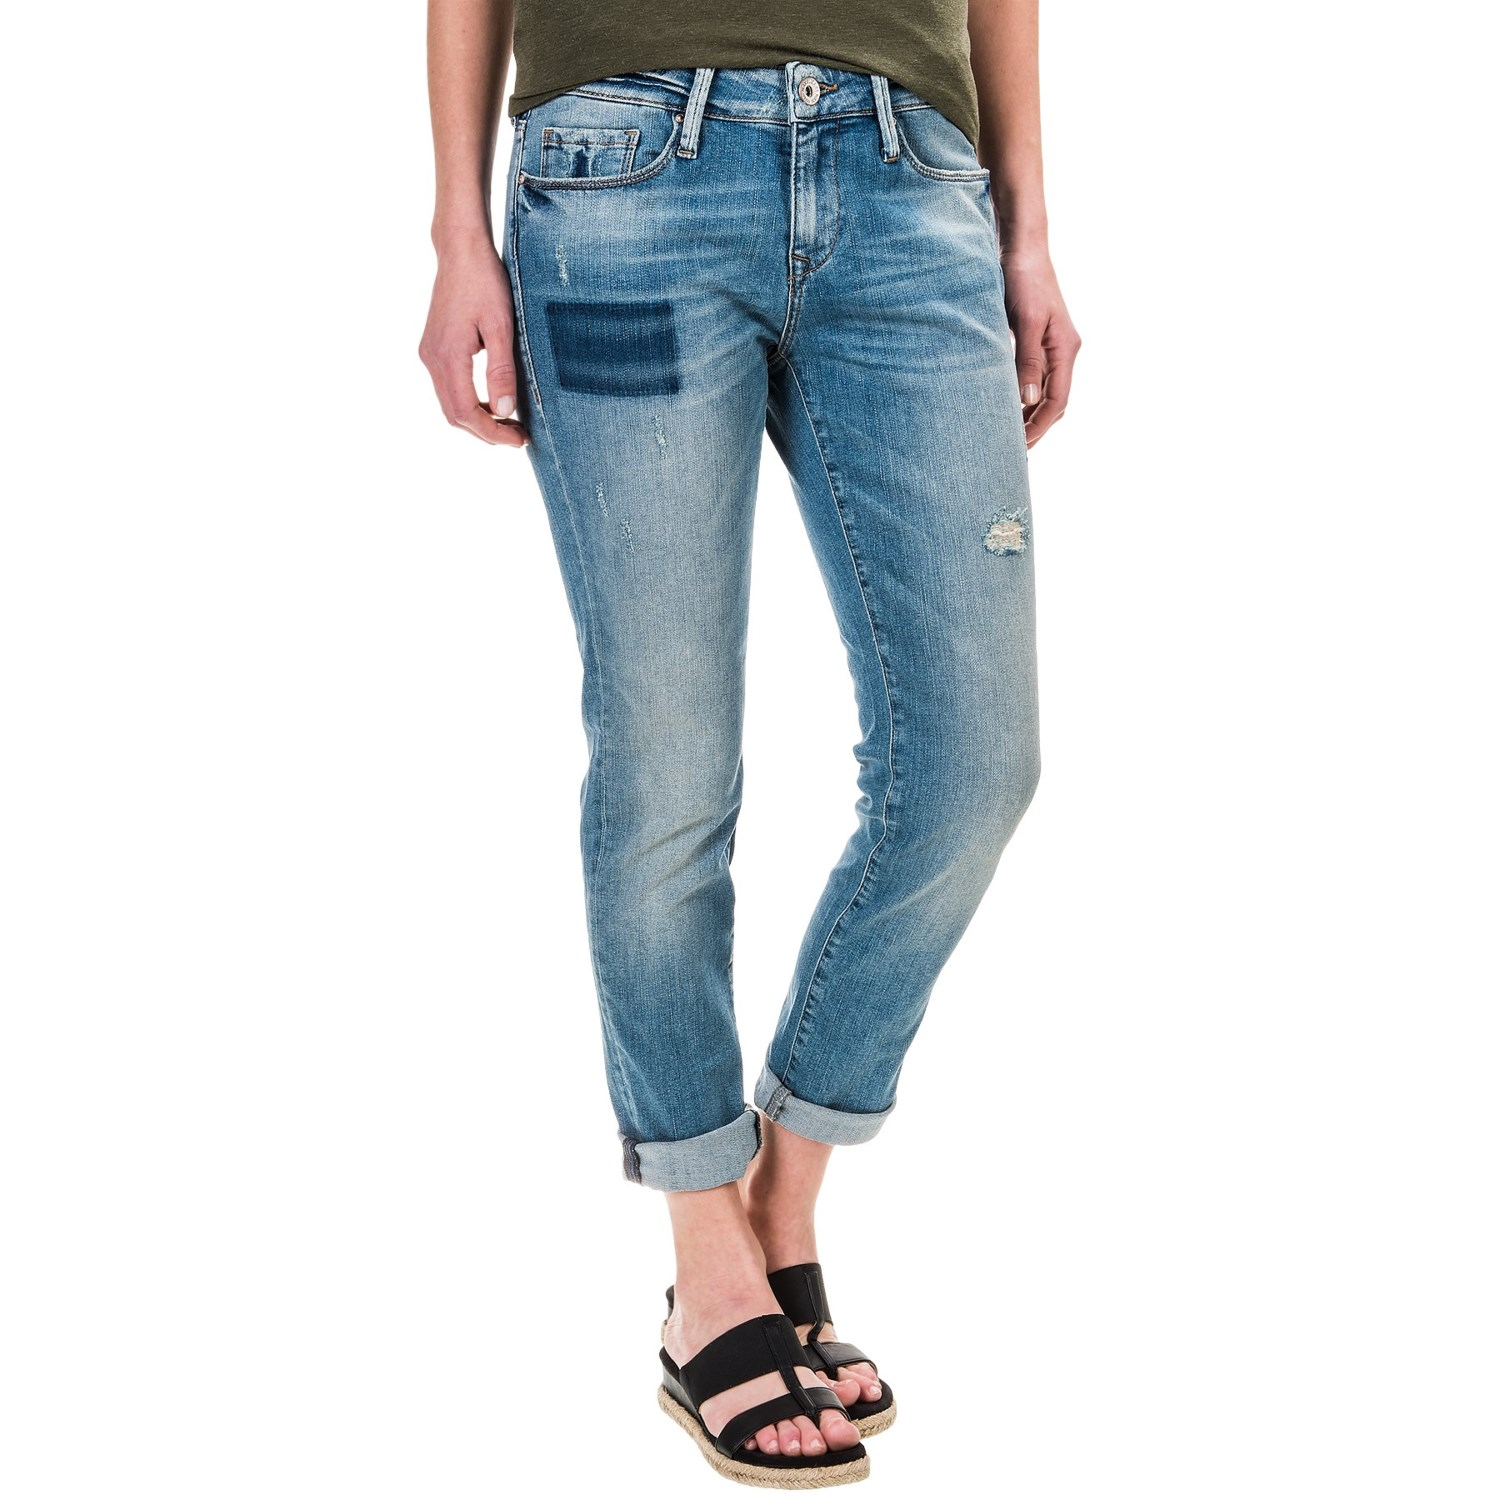 Mavi Ada Boyfriend Jeans (For Women) - Save 62%